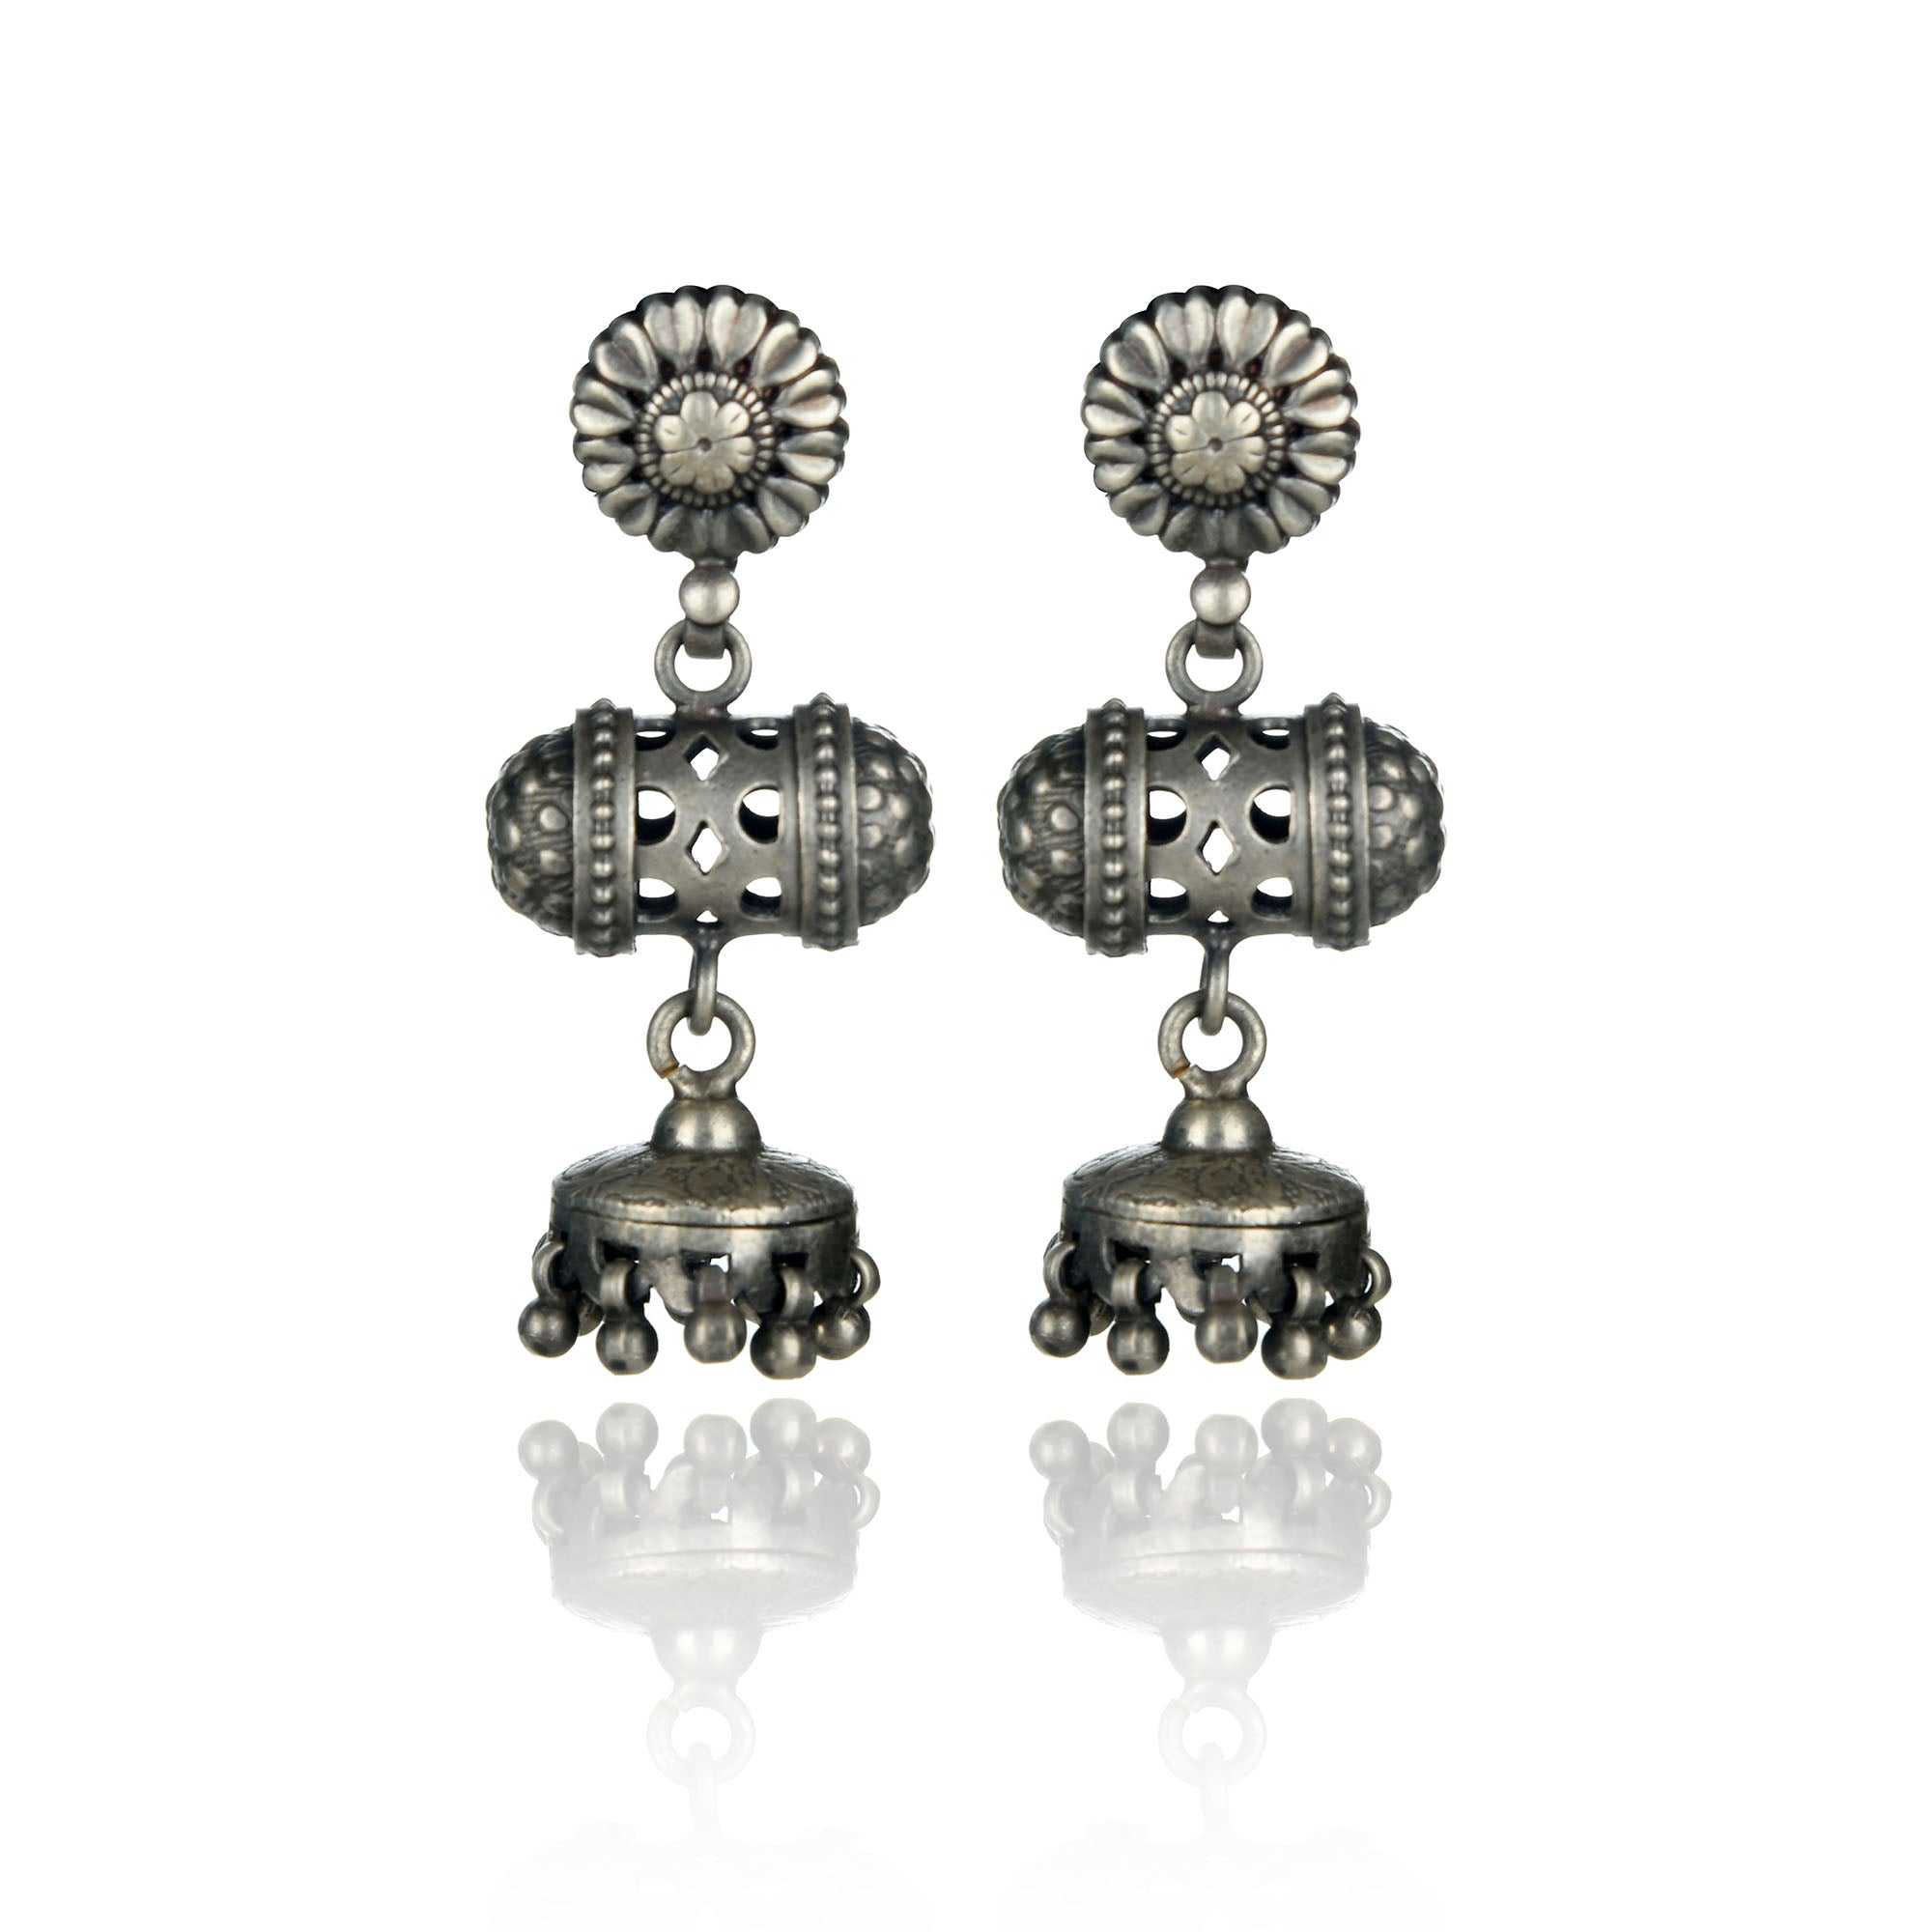 ANTIQUE STERLING SILVER EARRING.